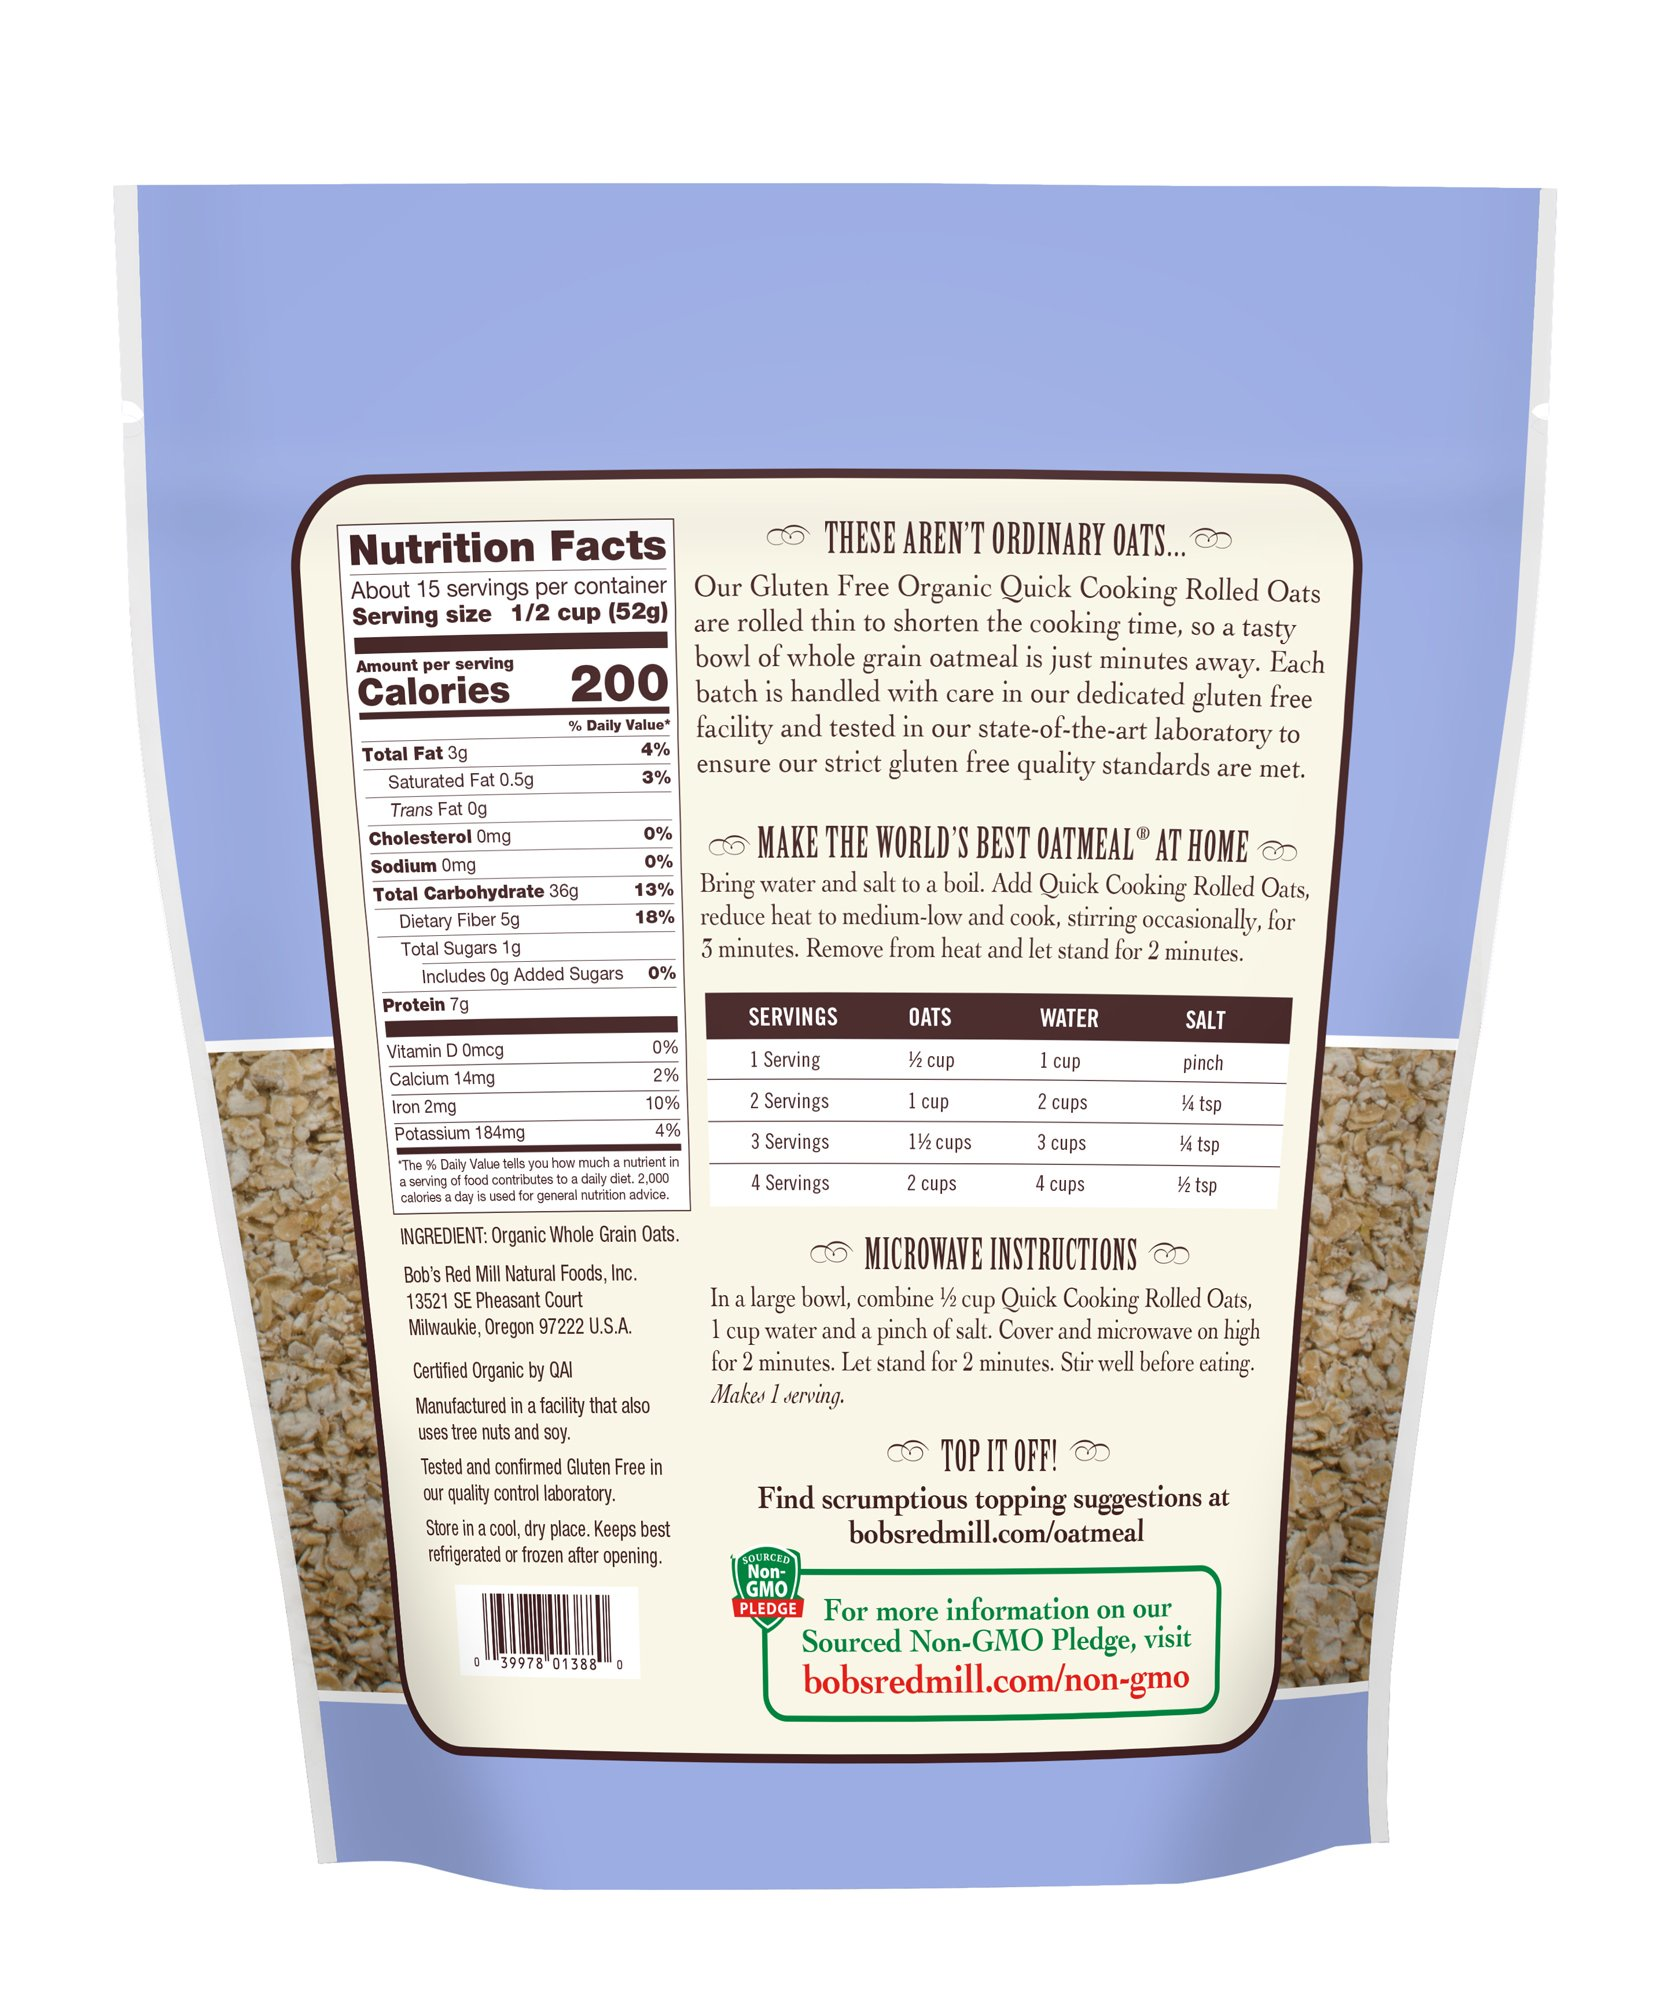 Bob's Red Mill (Resealable) Gluten Free Organic Quick Cooking Oats, 28-ounce (Pack of 4) by Bob's Red Mill (Image #3)